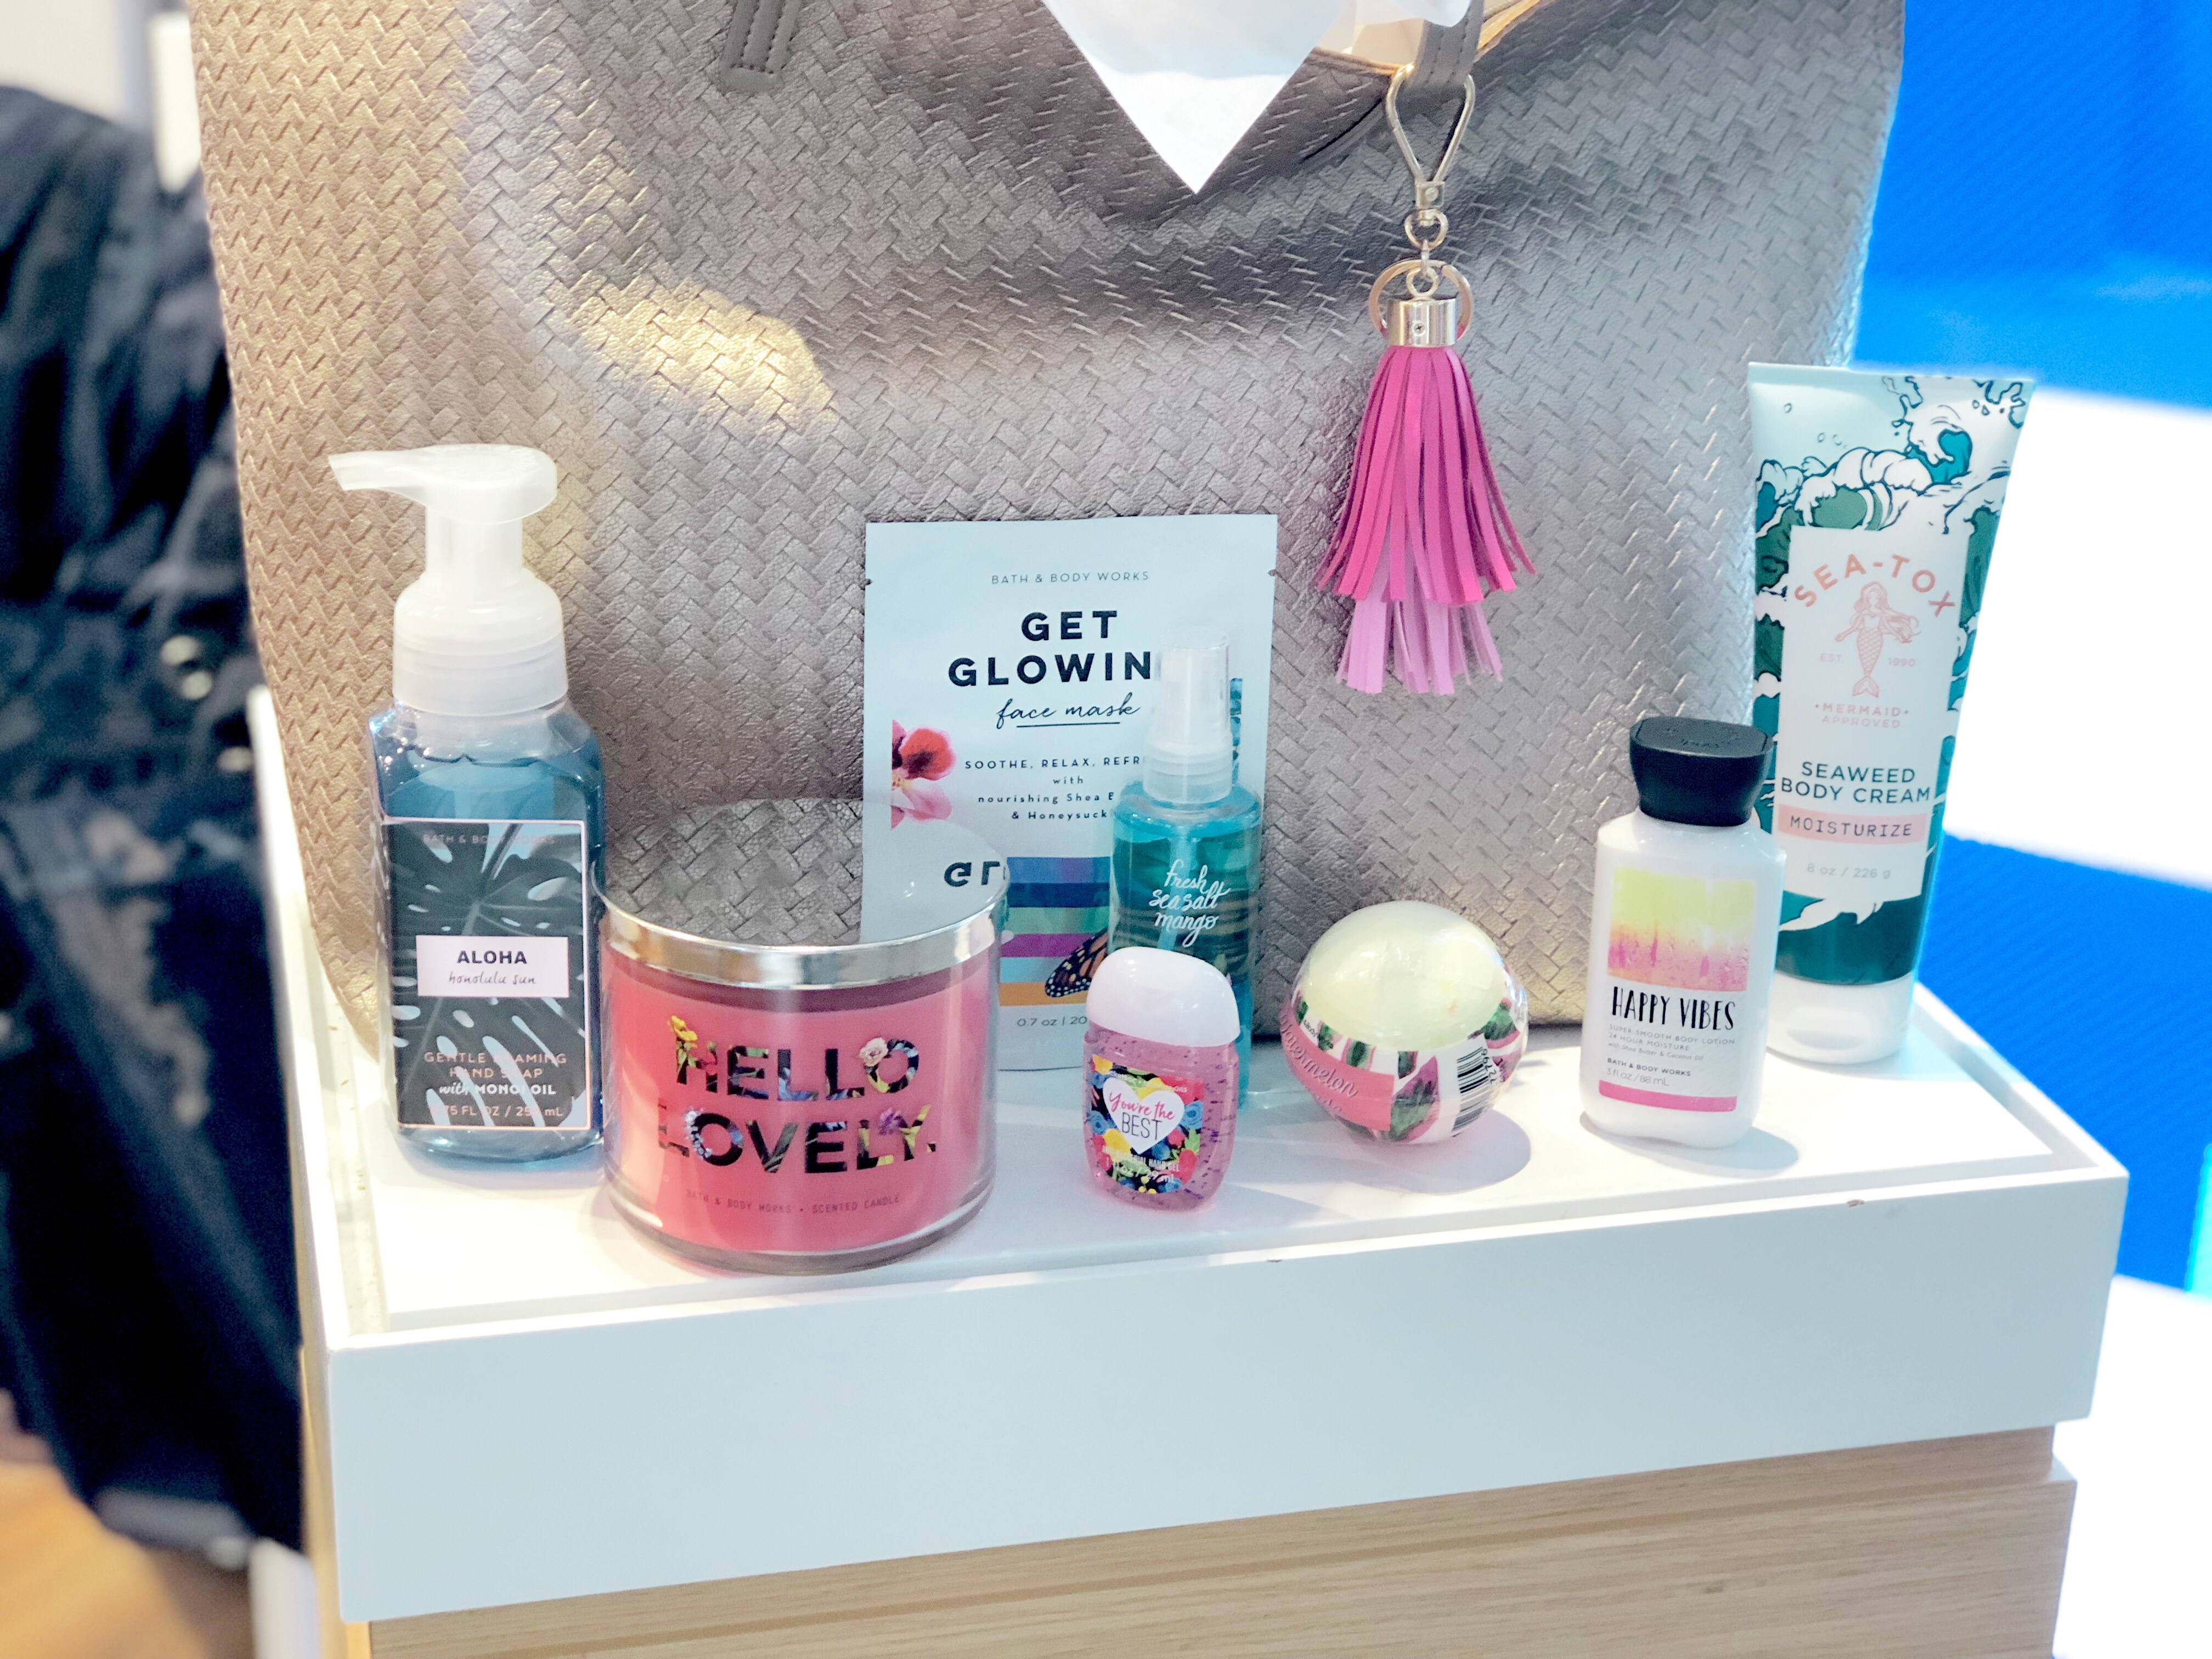 16 secrets for saving big at bath & body works – tote with suggested items